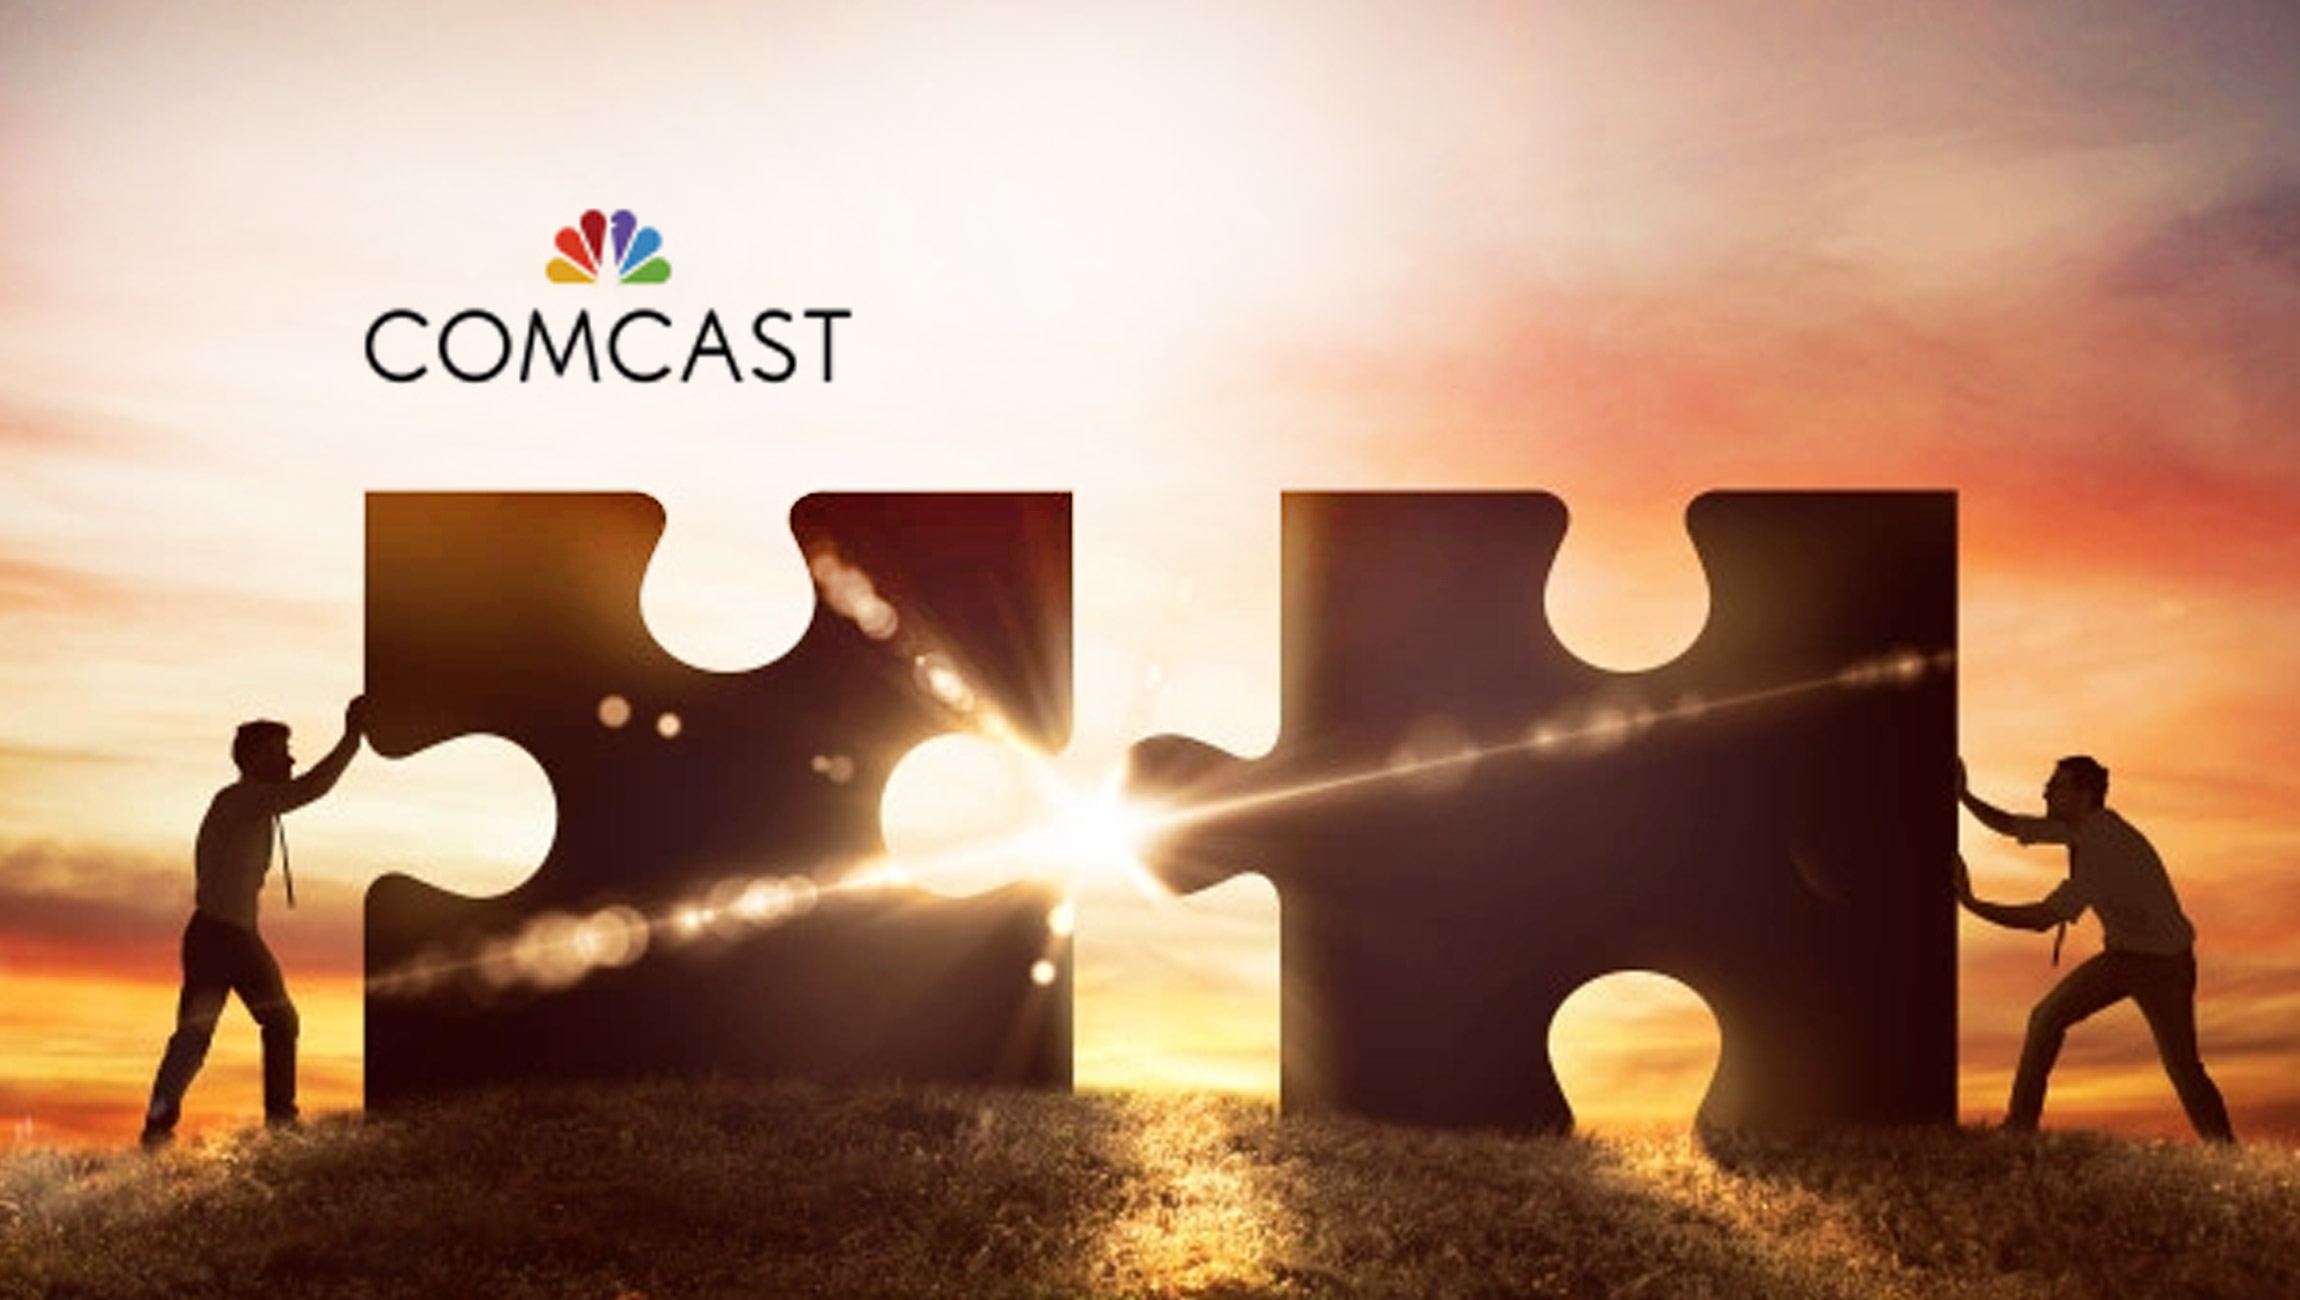 Comcast Business to Acquire Masergy, a Pioneer in Software-Defined Networking and Cloud Platforms 6